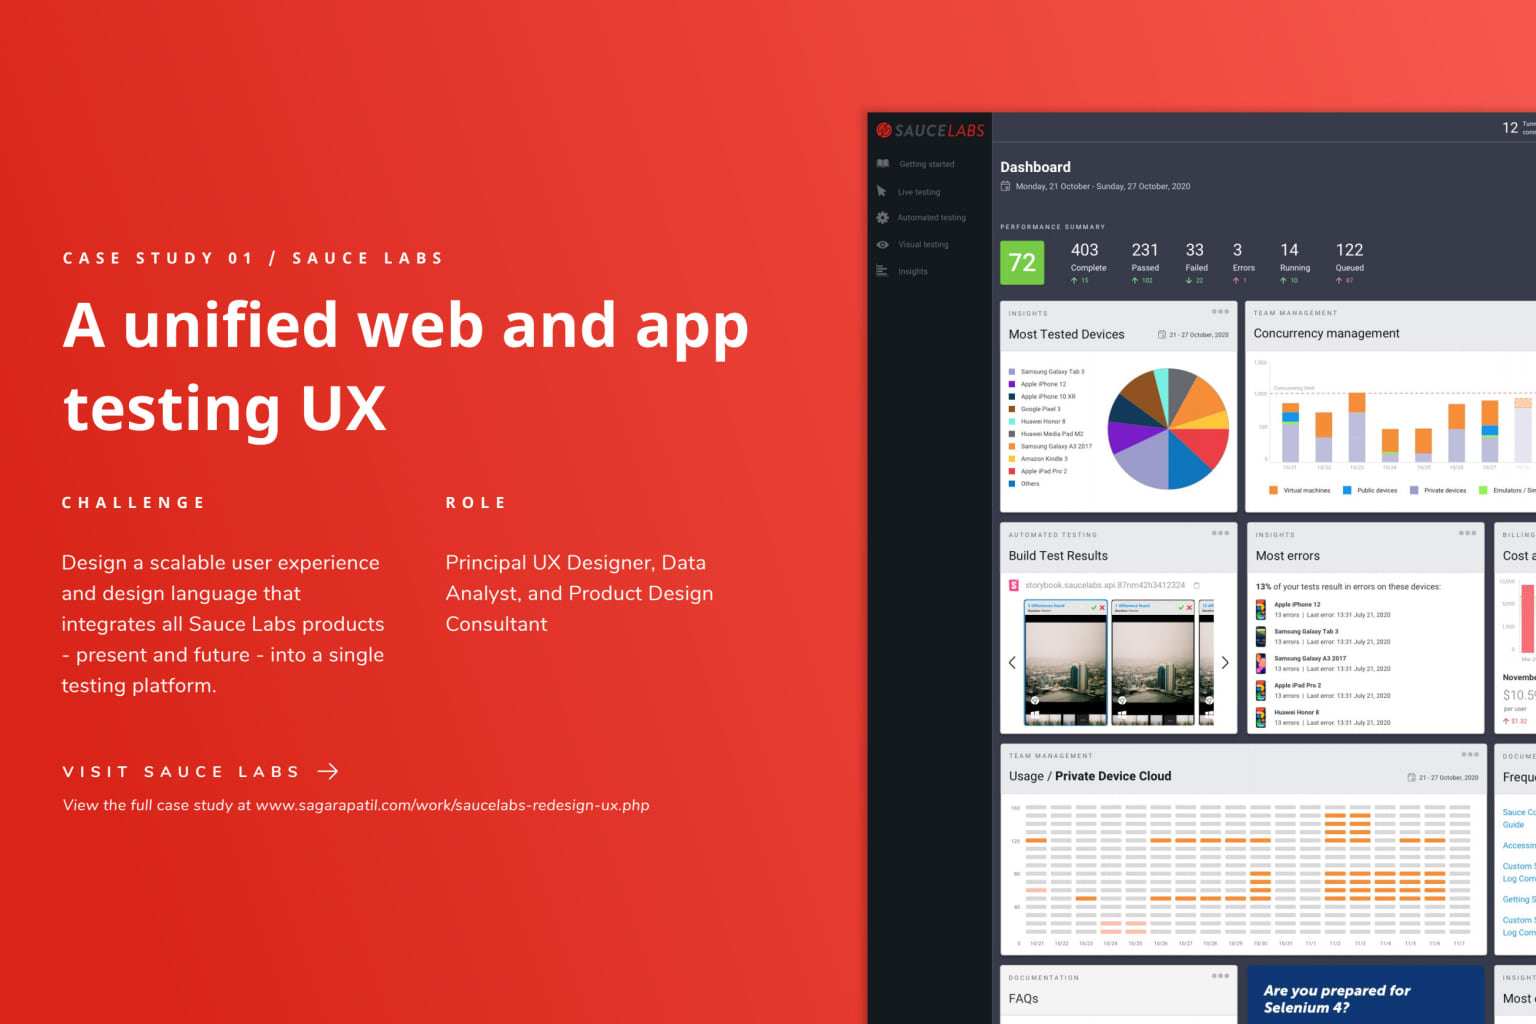 Designing a unified web and app testing user experience.